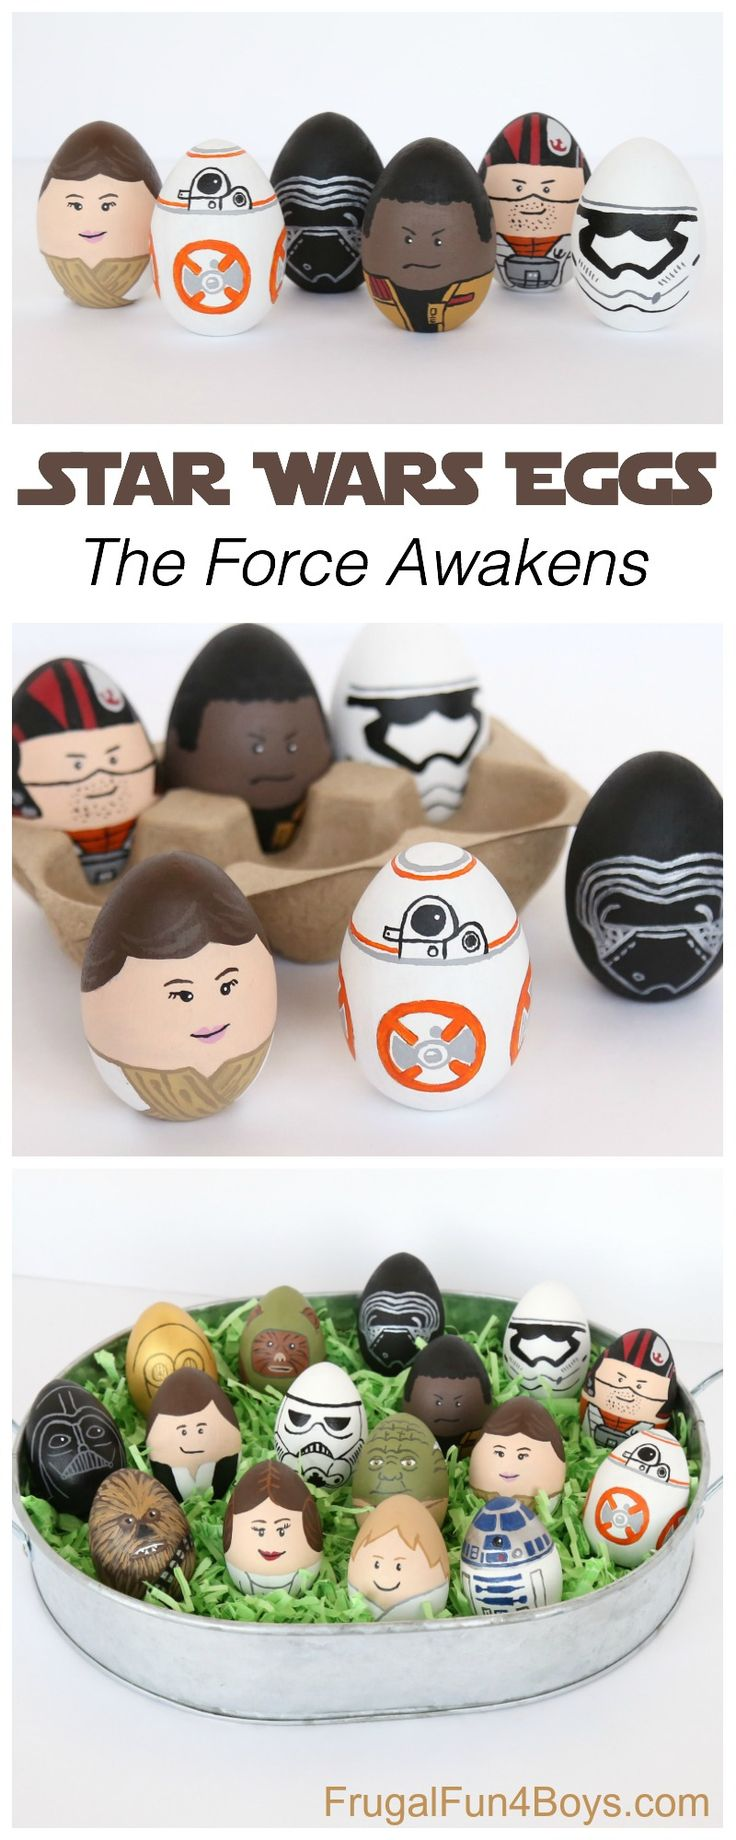 Last year, I painted wooden eggs with Star Wars characters, and the boys loved them! In fact, I'm pretty sure we left them out on the dining table until May or June. This year, they talked me into adding characters from The Force Awakens, and I'm glad they did because they were so fun to …